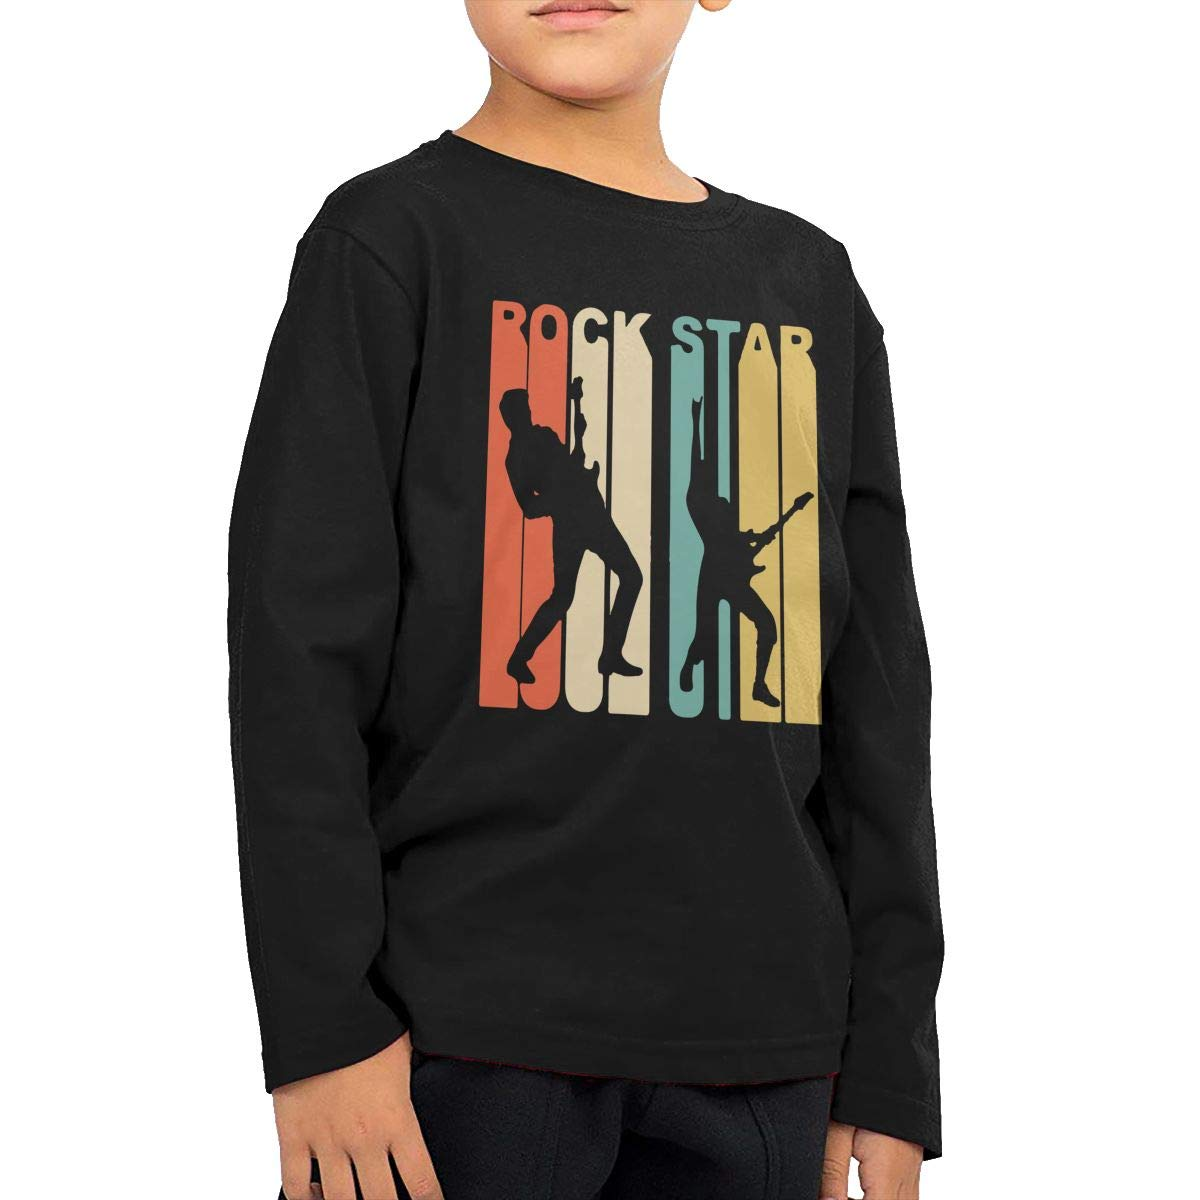 Retro 1970s Style Rock Star Kids Boys Girls Crewneck Long Sleeve Shirt Tee for Toddlers